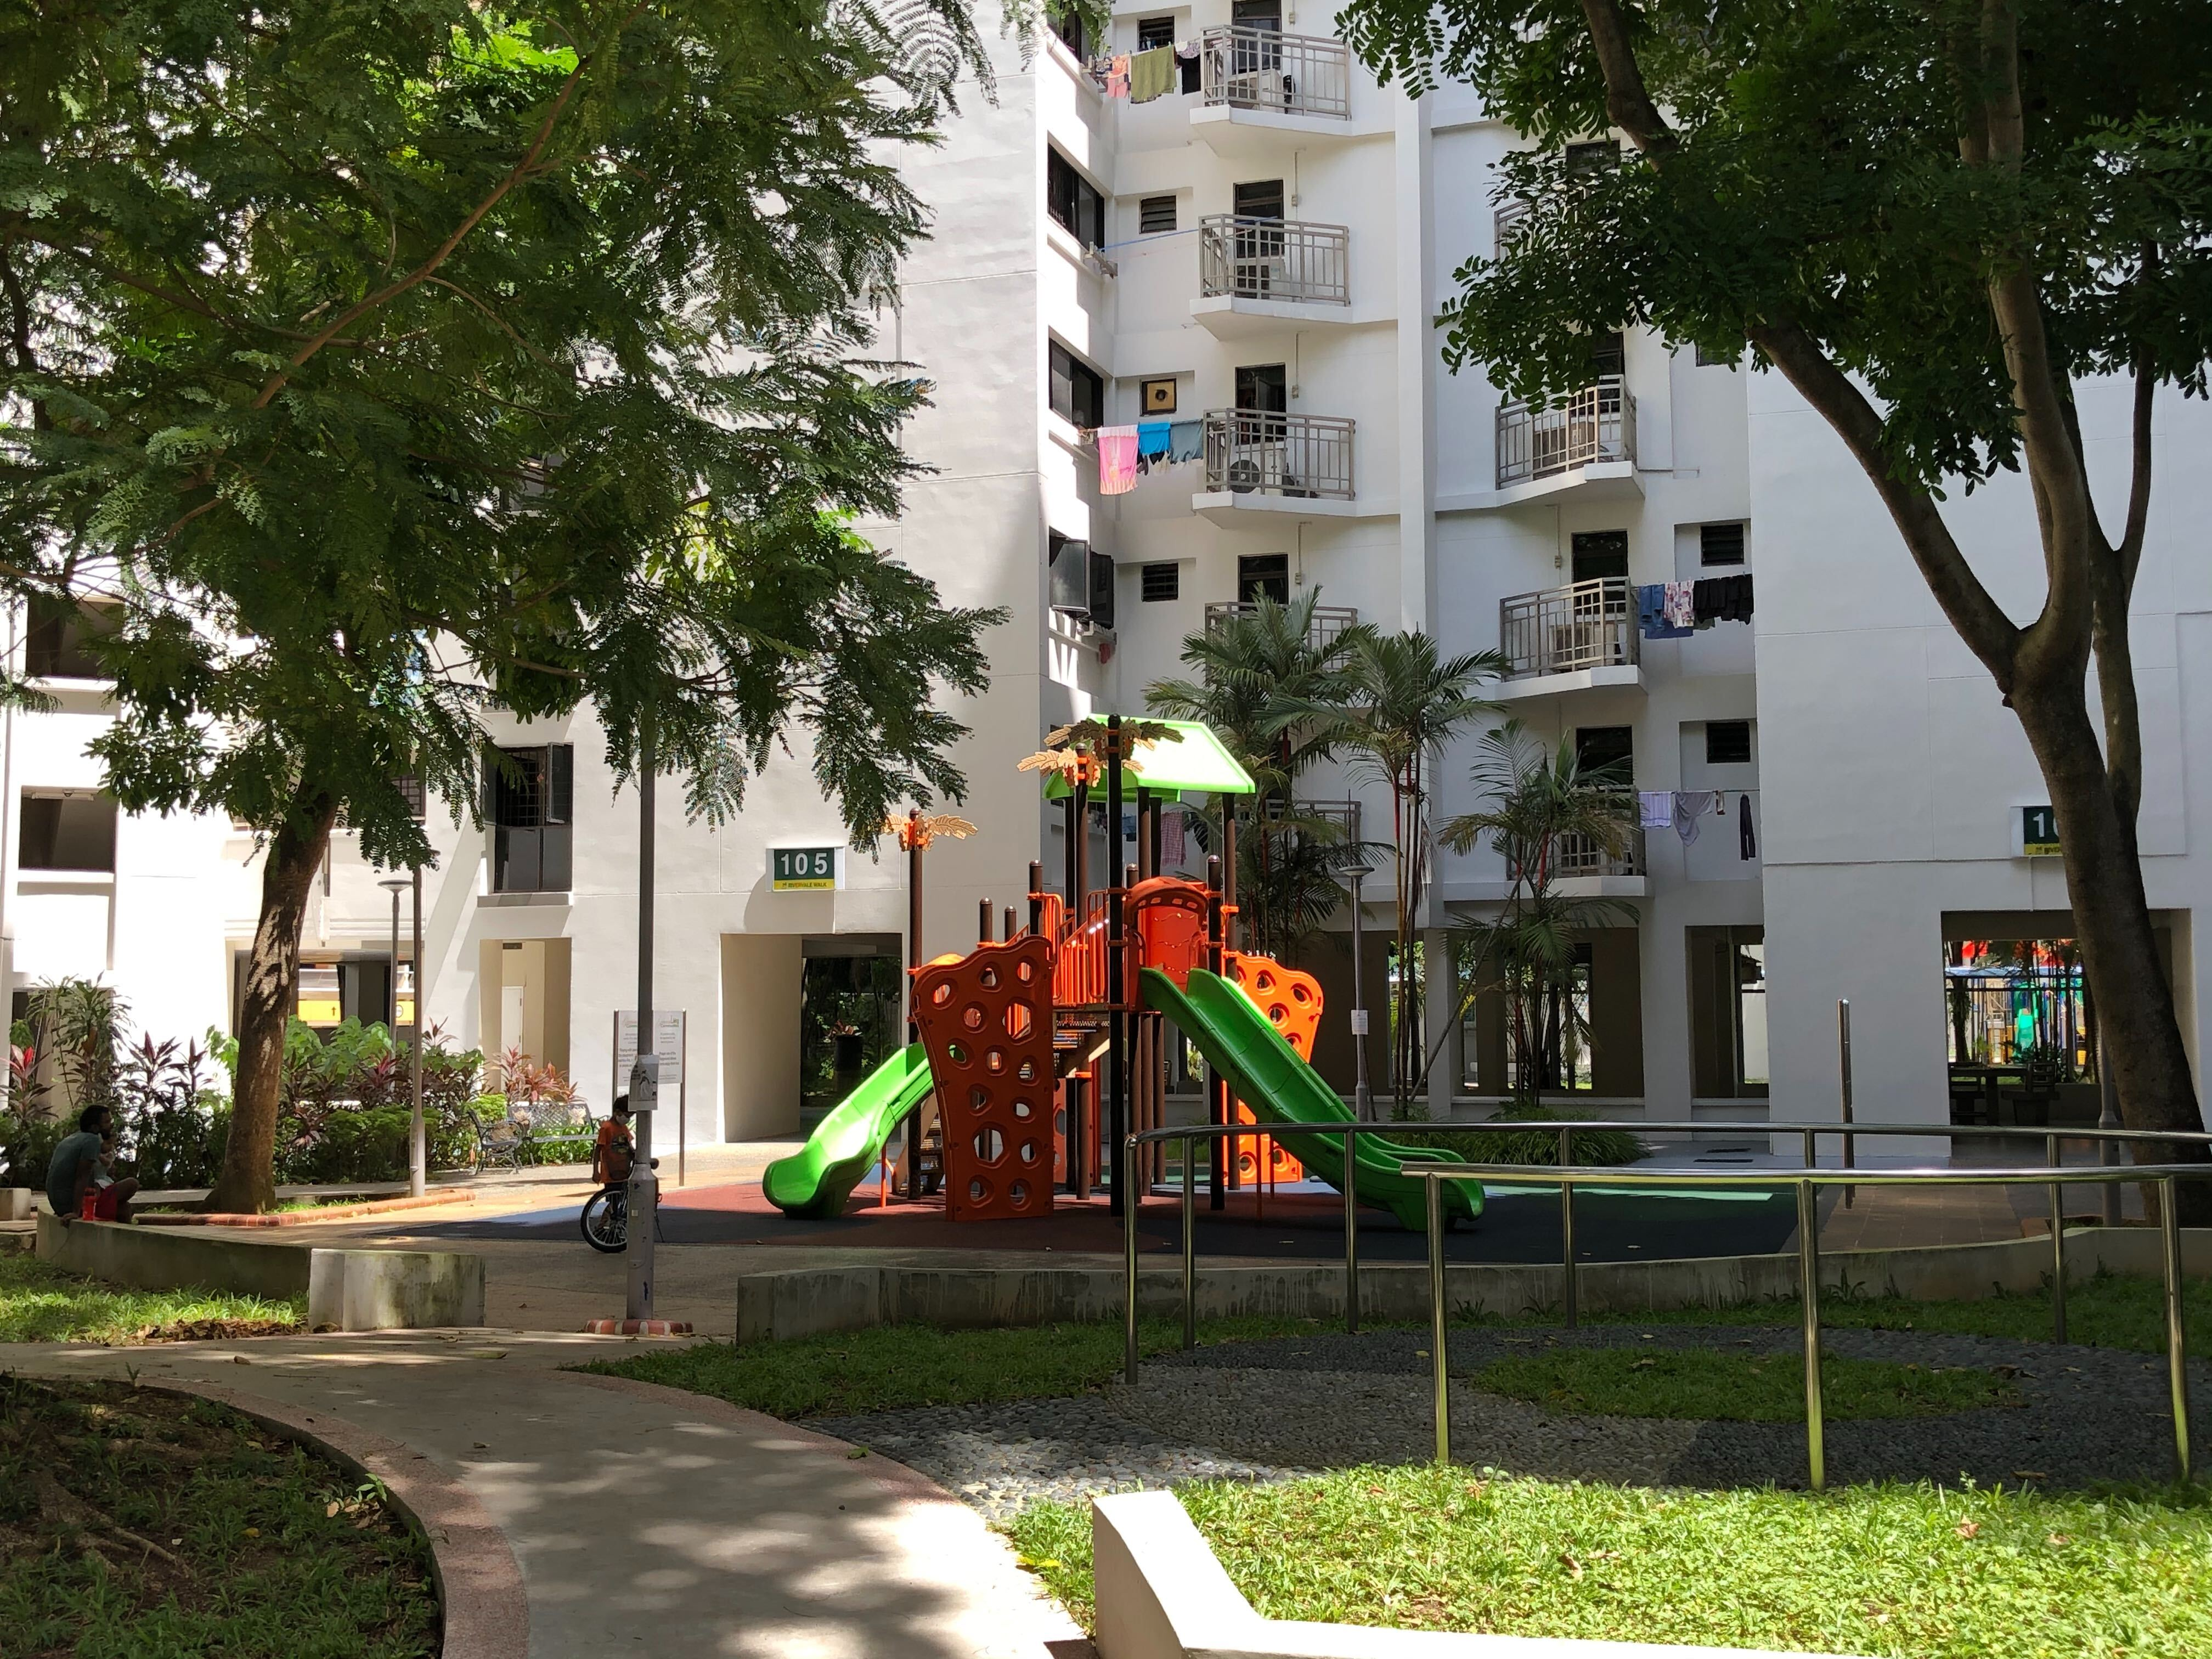 Is Sengkang All That It's Made Out To Be? We Went For A Walk To Find Out